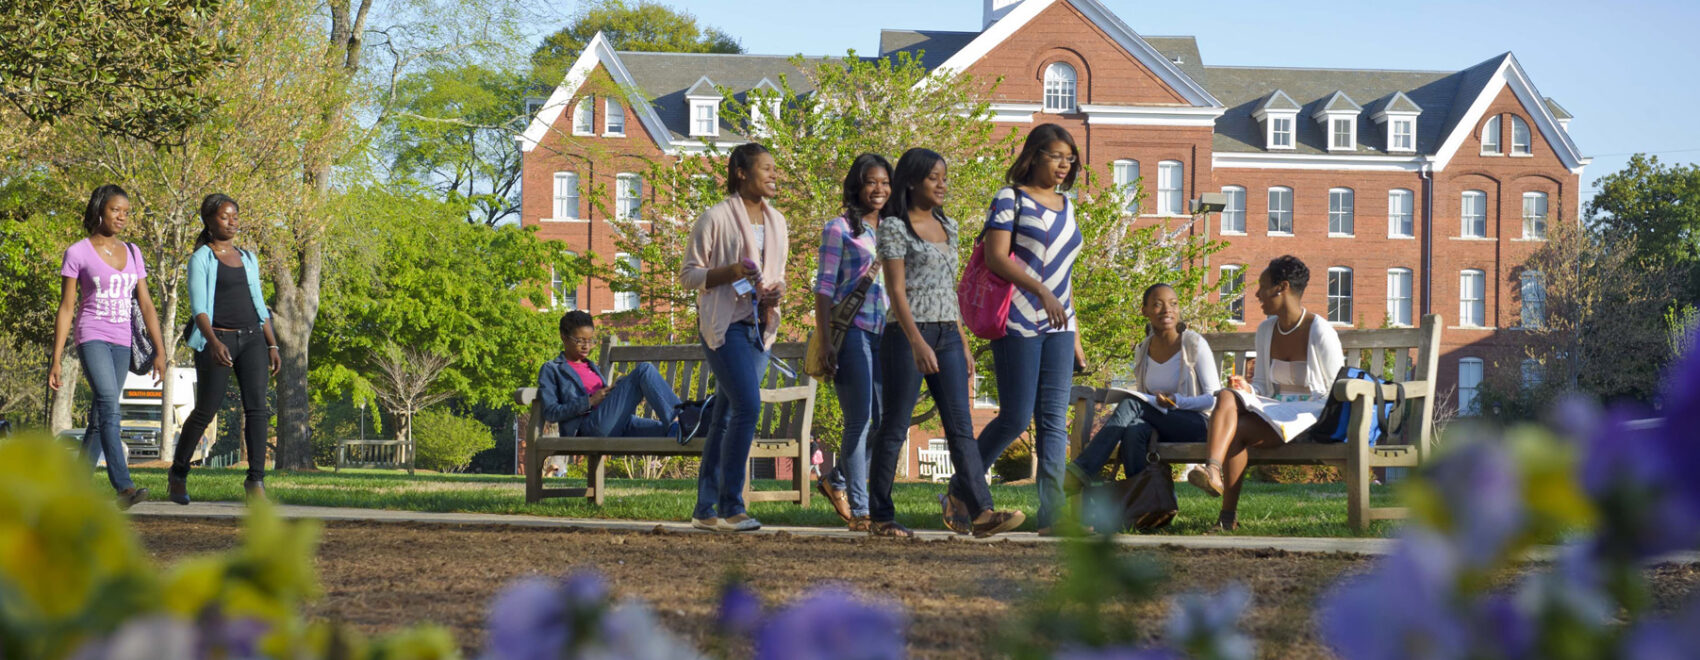 Spelman Students on the Oval